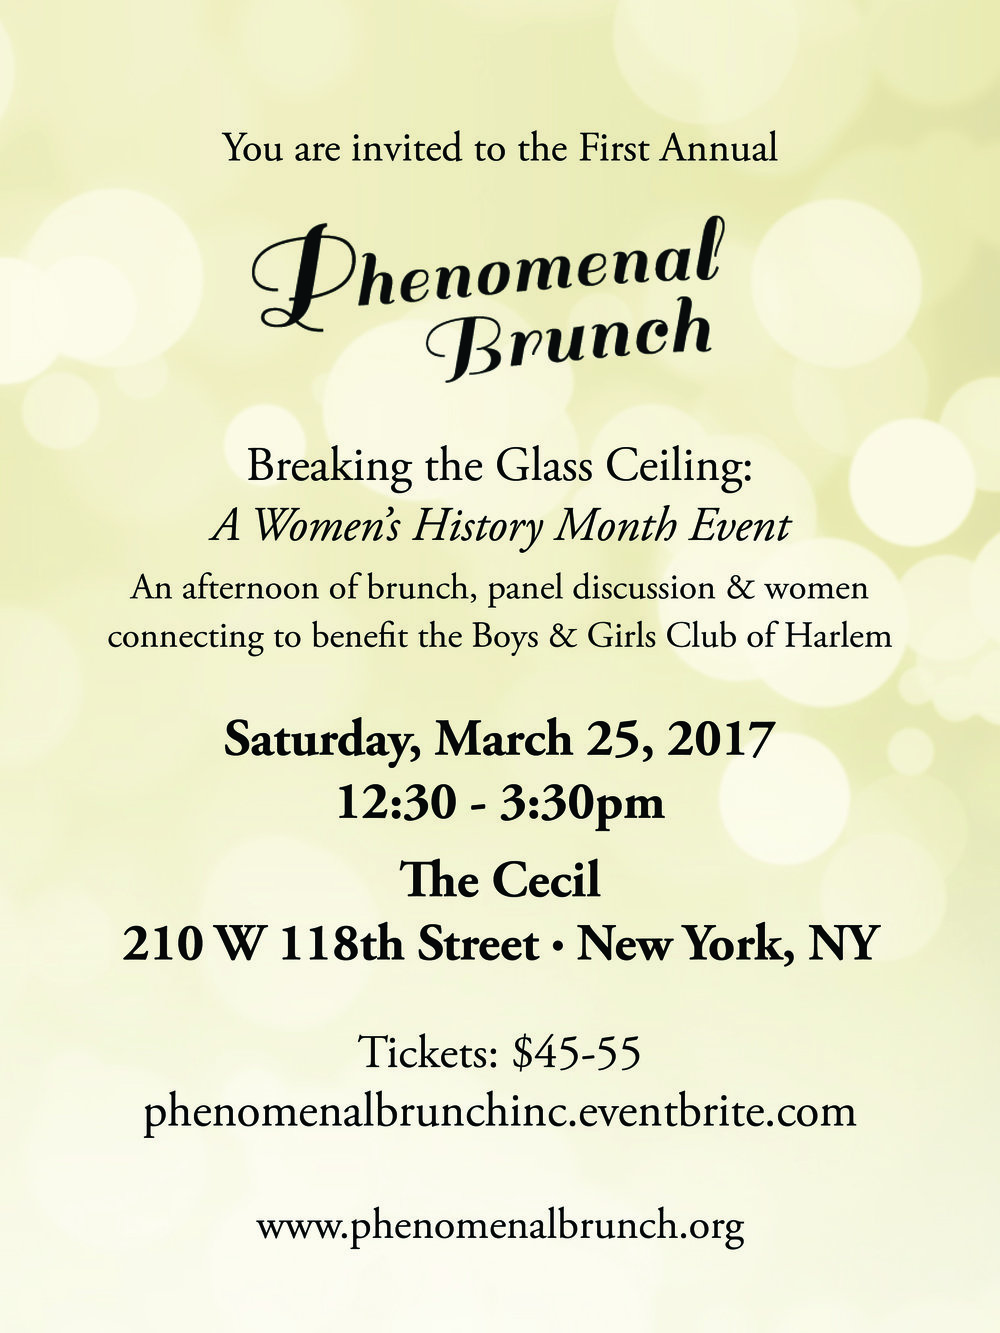 The First Annual Phenomenal Brunch invitation.